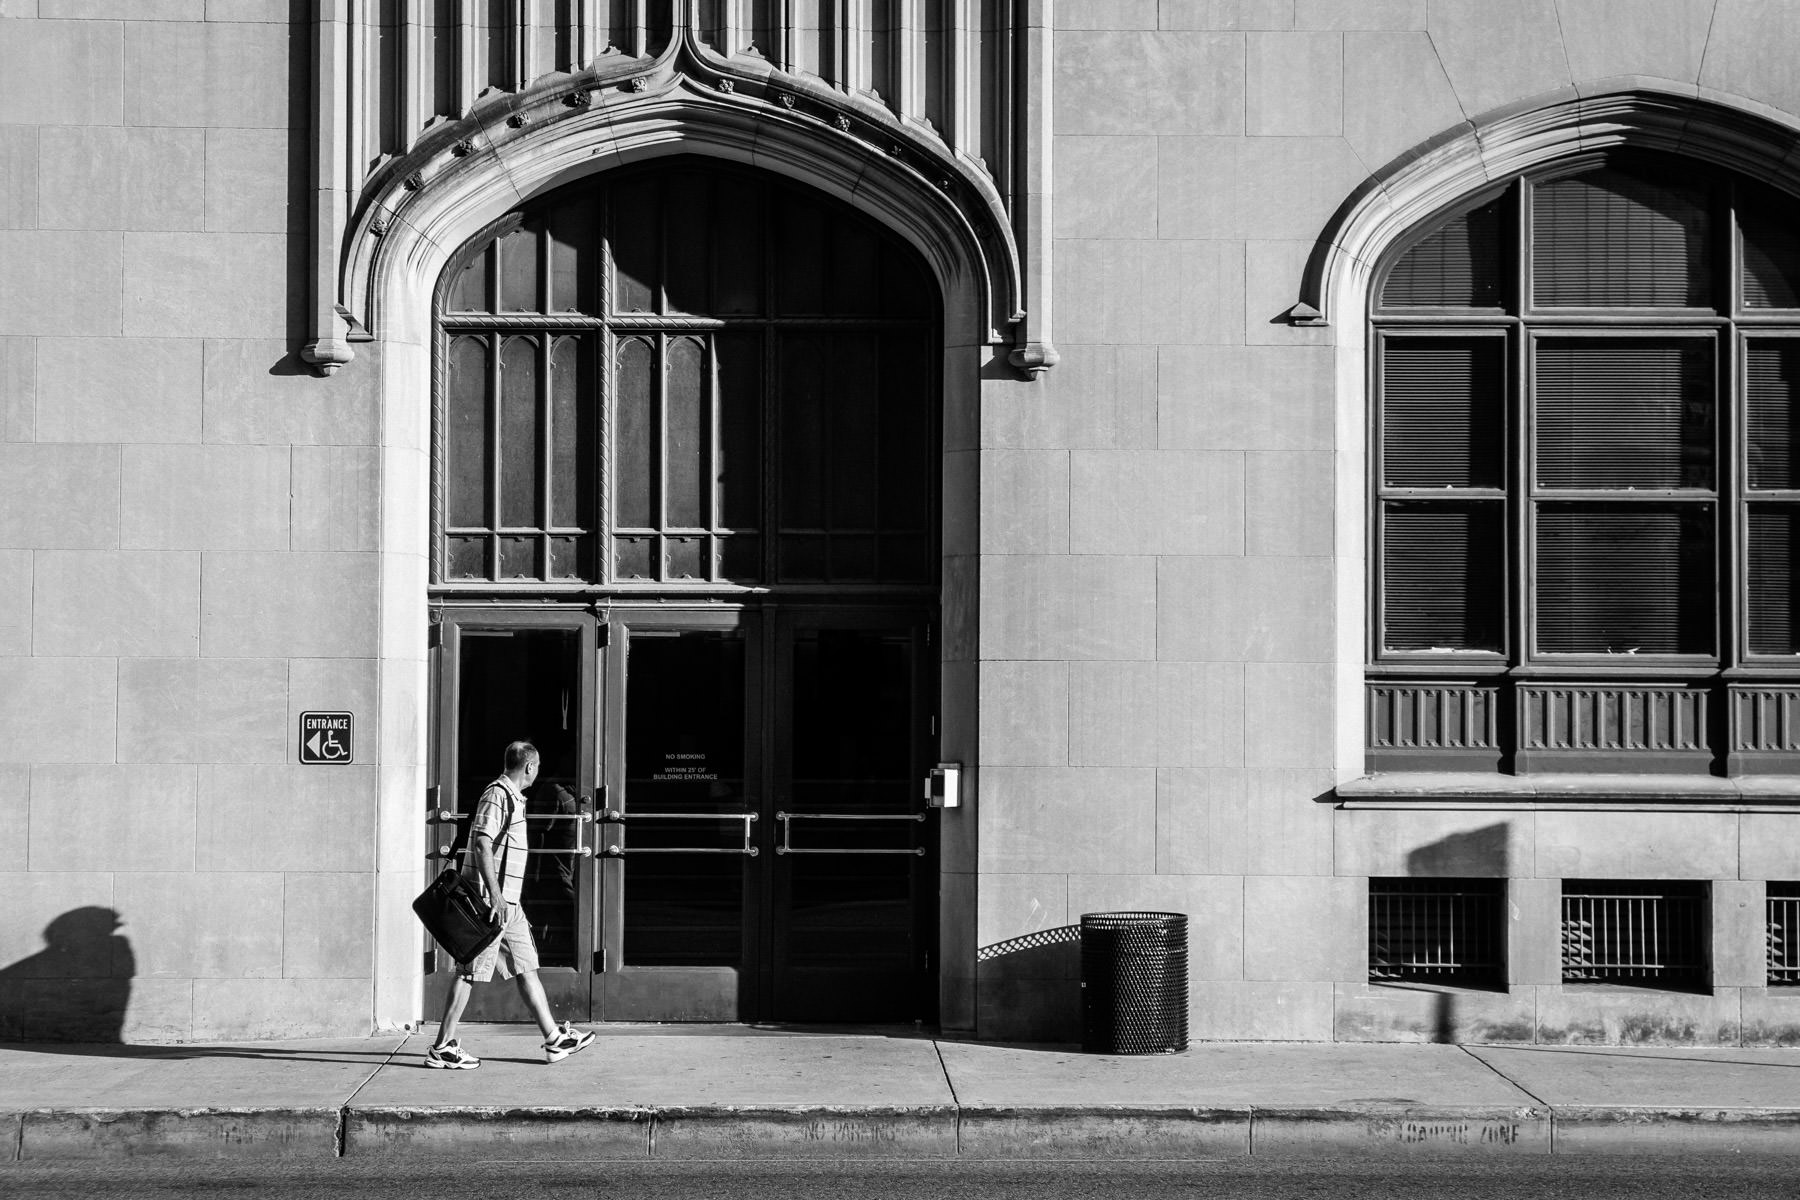 A pedestrian walks past the entrance to the Dallas County Records Building in Downtown Dallas.